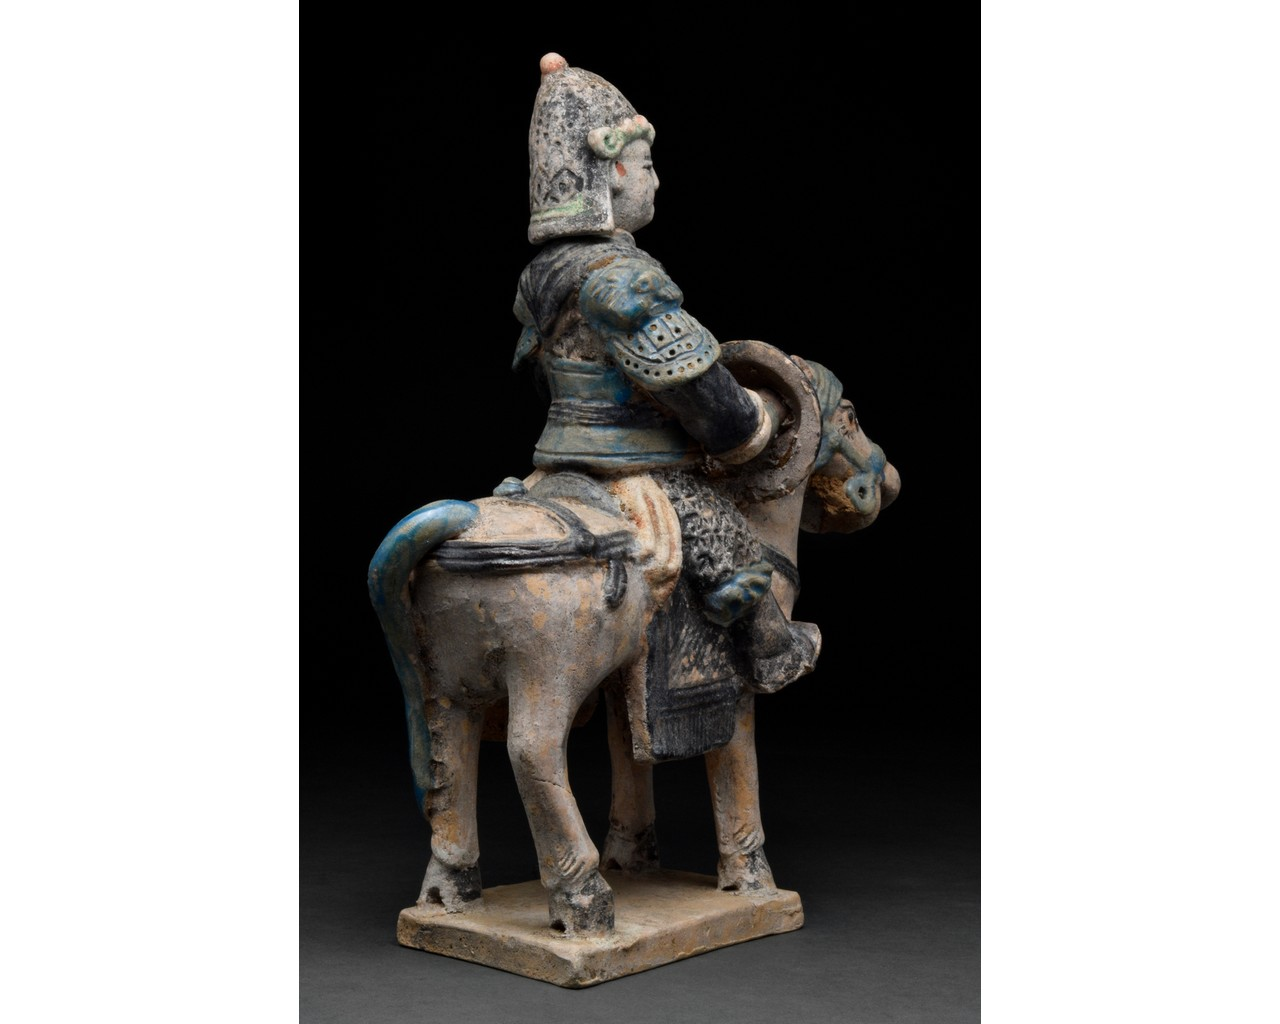 CHINESE MING DYNASTY HORSE AND RIDER FIGURE - Image 3 of 5